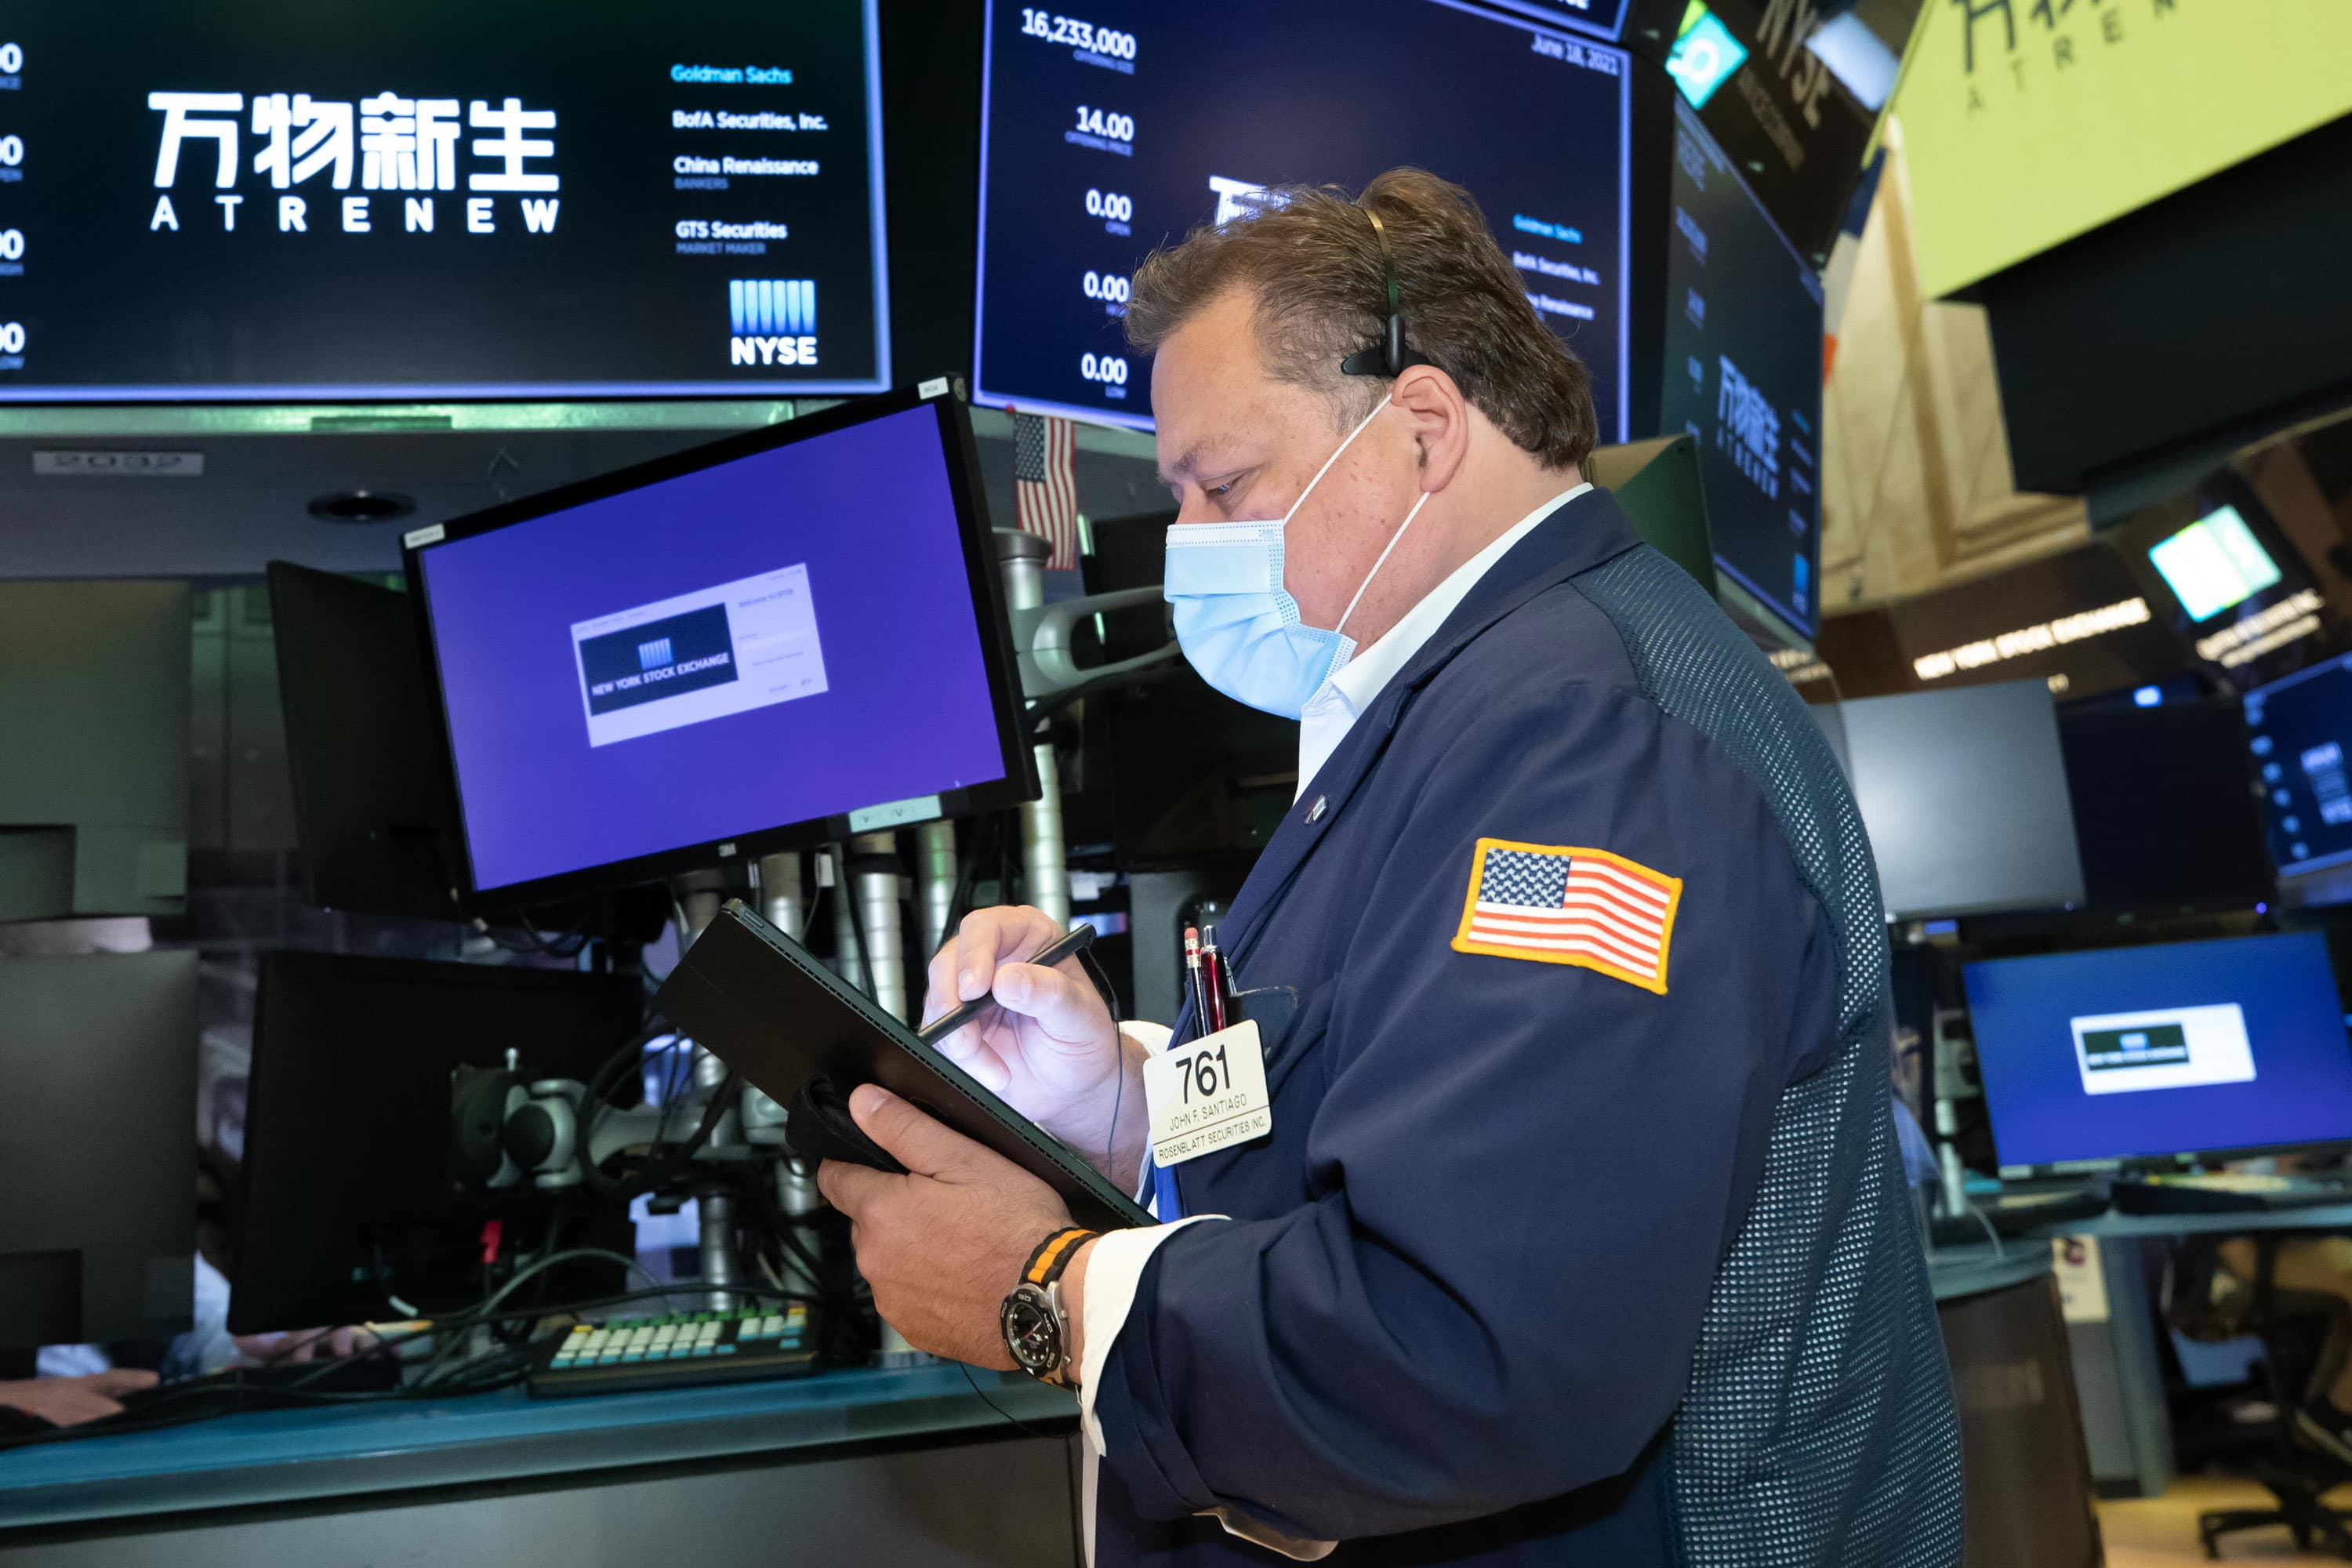 Traders are hopeful the IPO market can repeat its record first half